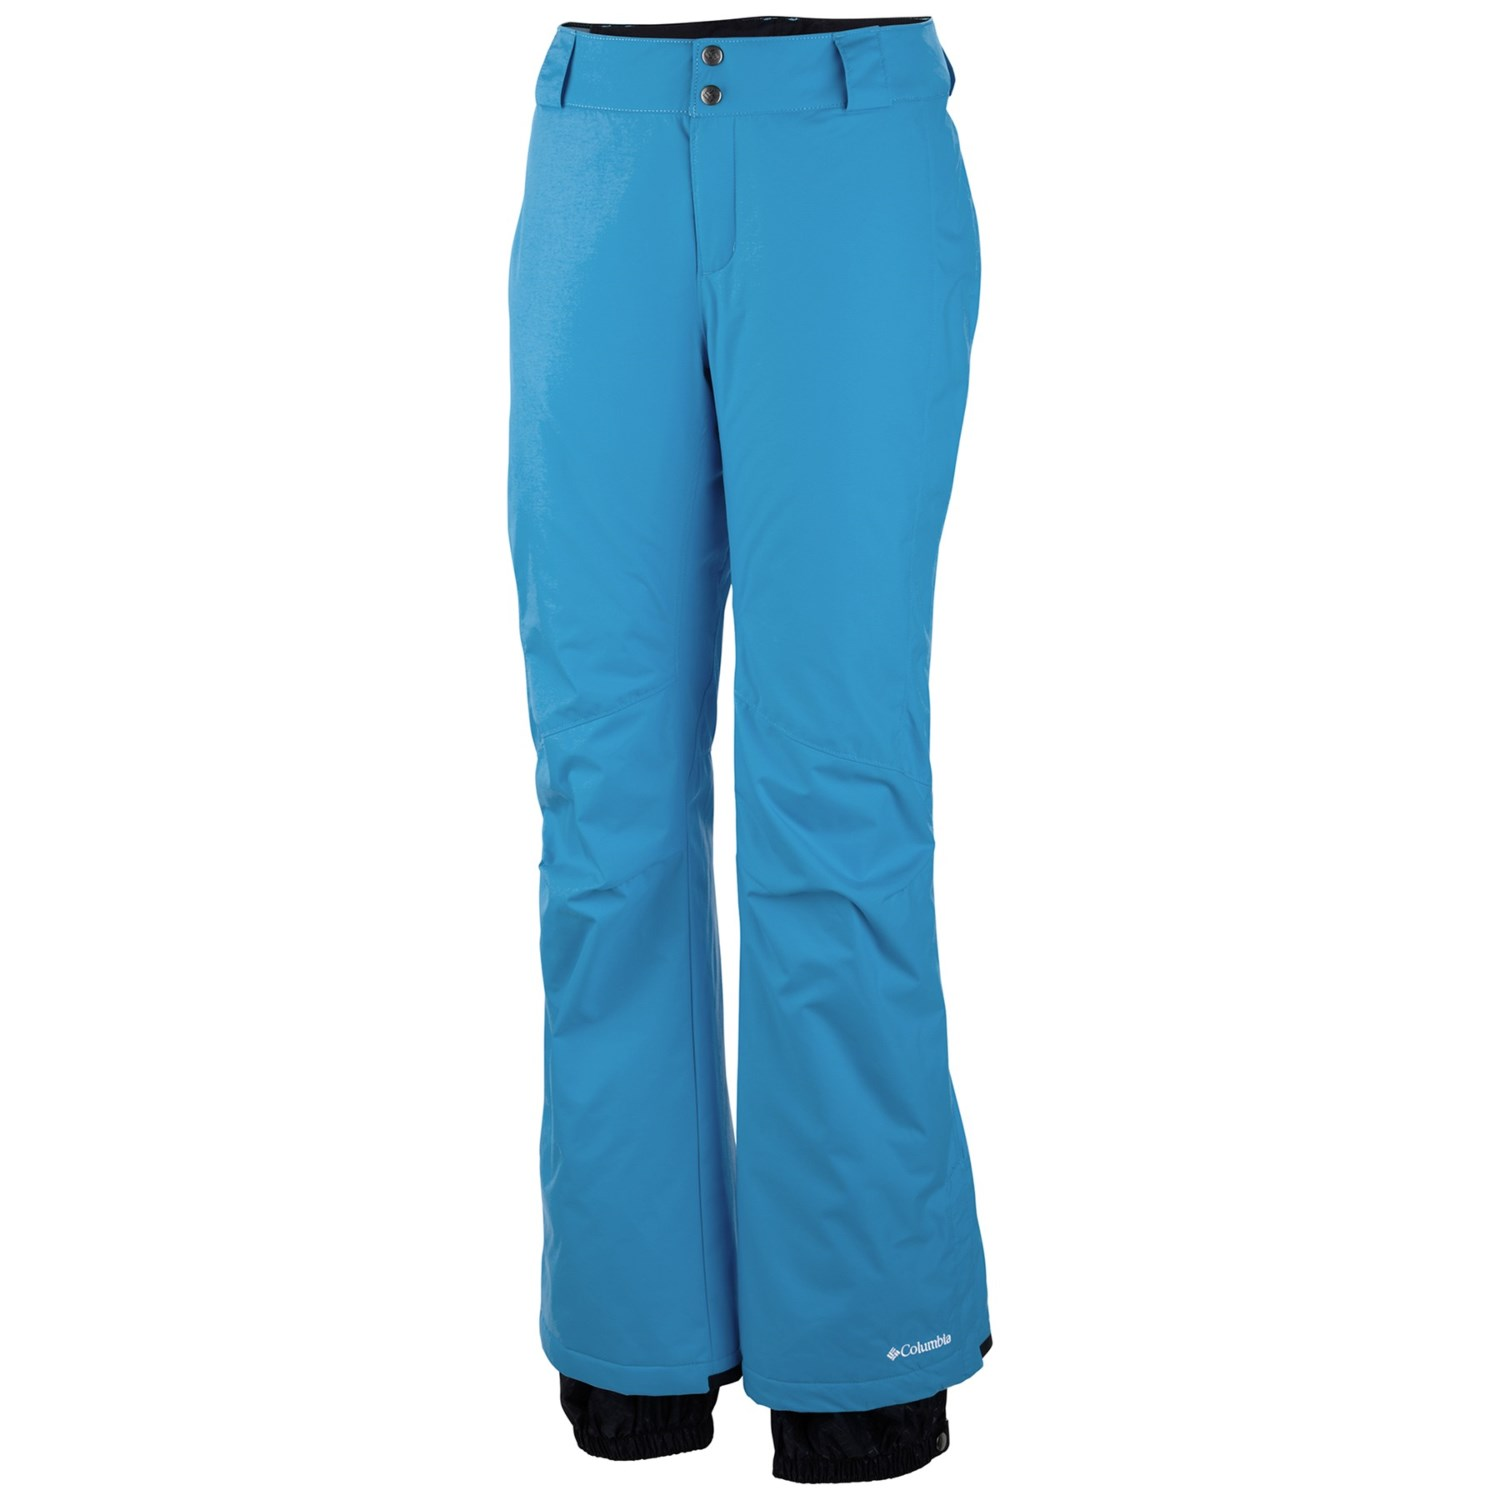 Awesome Hiking Cargo Pants Men Cw100017 Www Cwmalls Com Outdoor Cargo Hiking